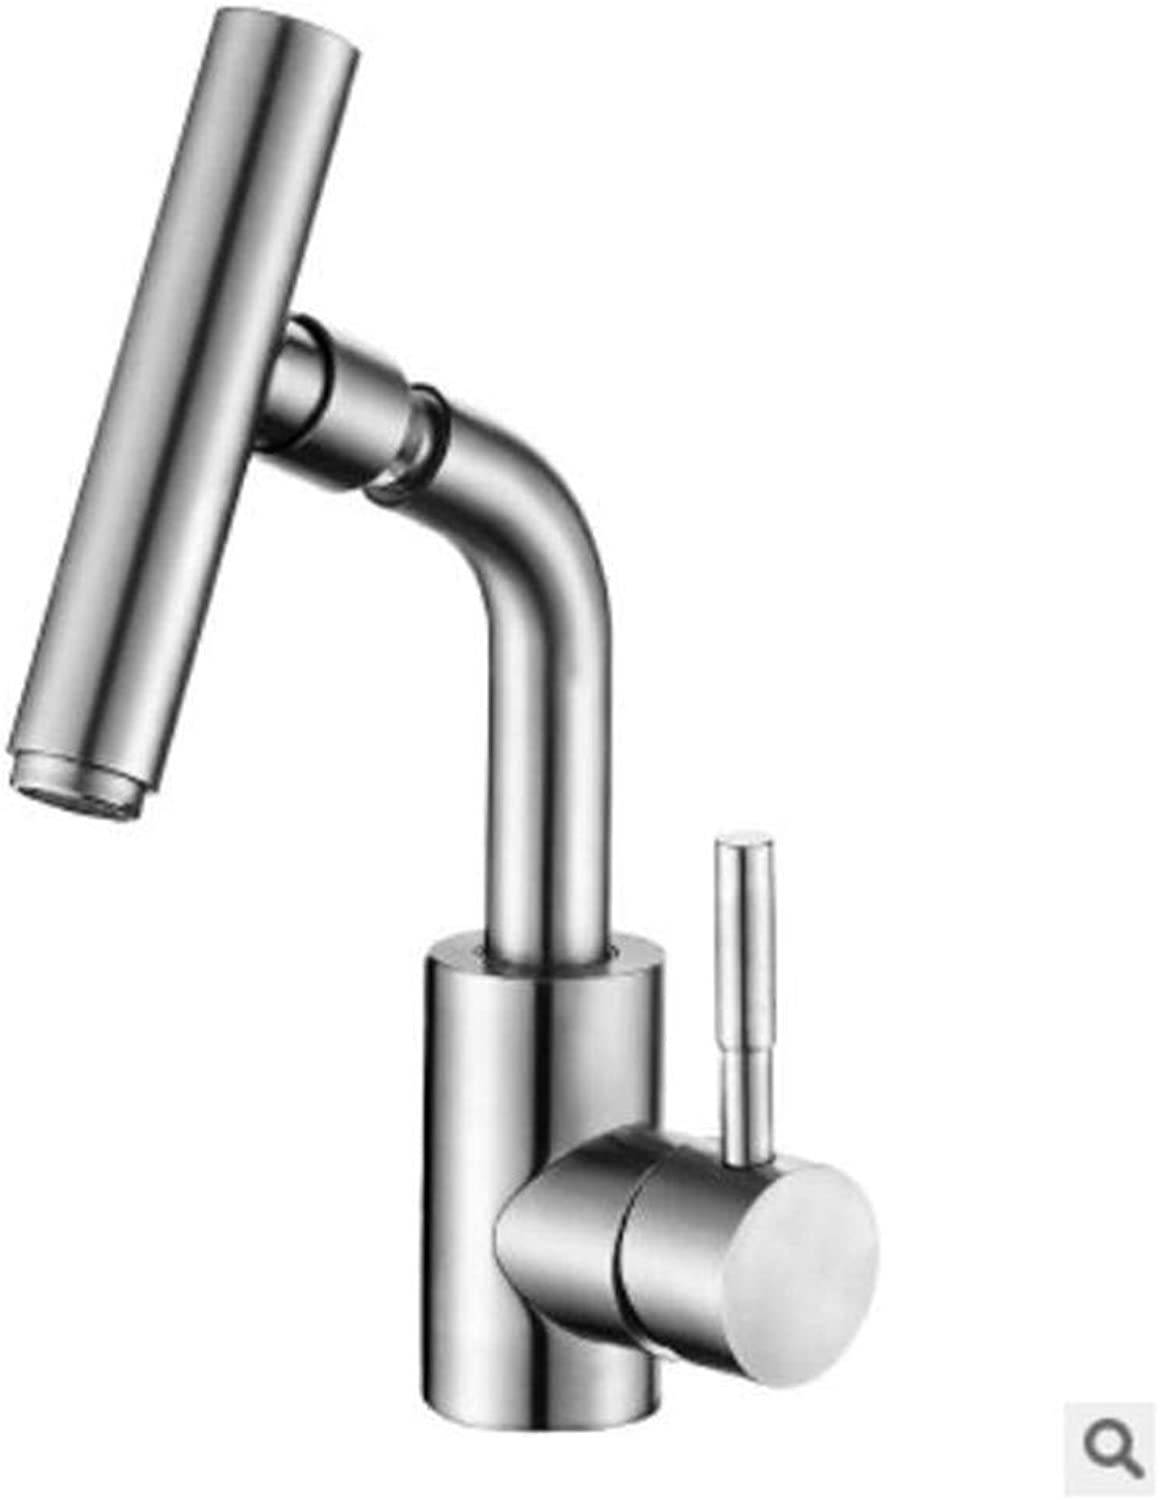 Oudan Stainless Steel Kitchen Faucet Sink Faucet Caipen Faucet Hot and Cold Taps (color   -, Size   -)